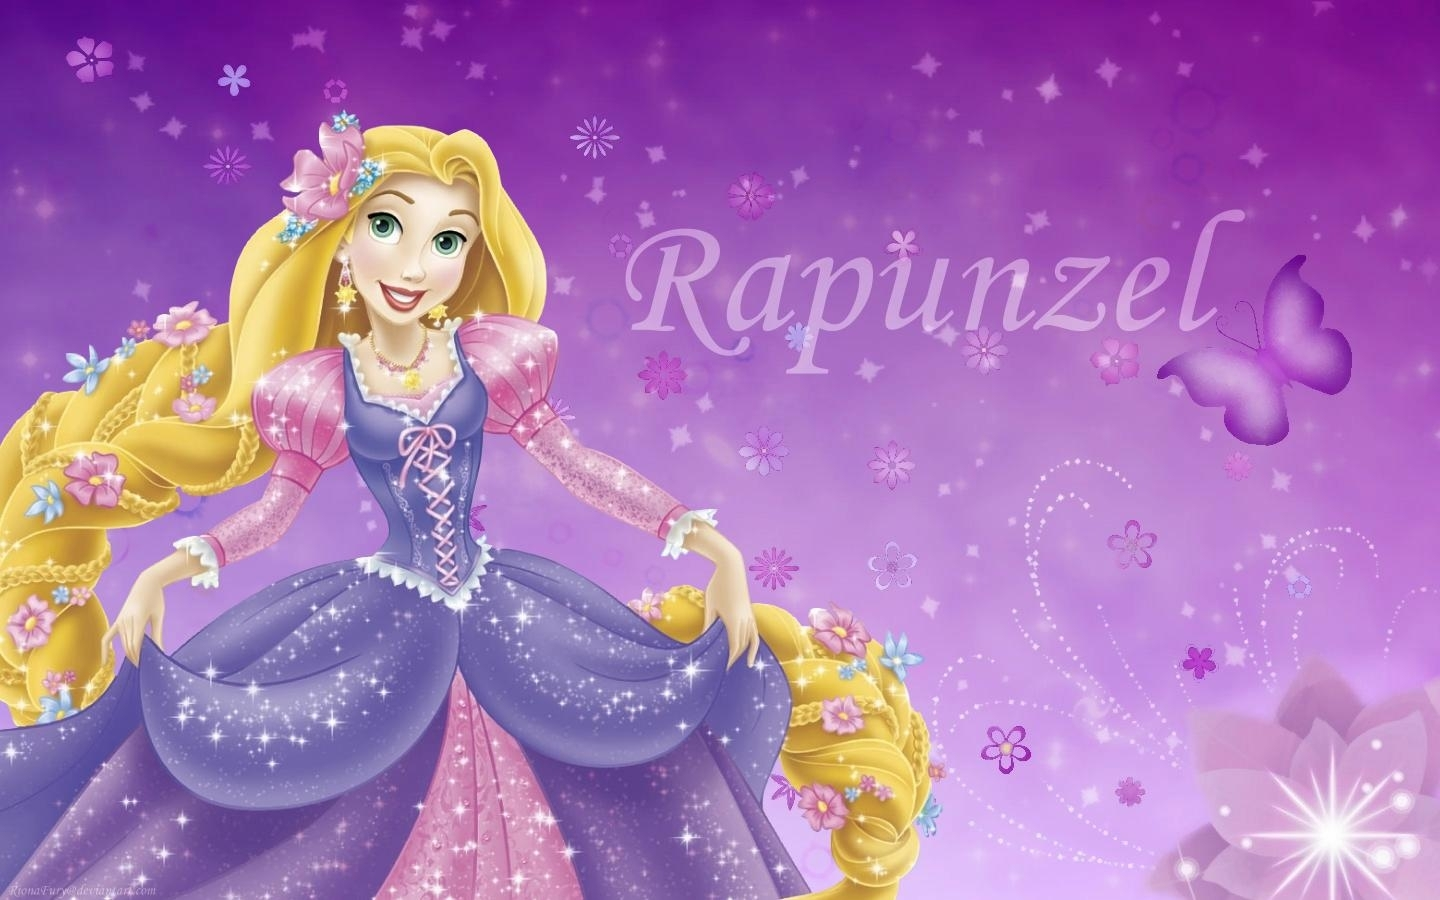 10 Latest Disney Princess Rapunzel Wallpaper FULL HD 1920×1080 For PC Background